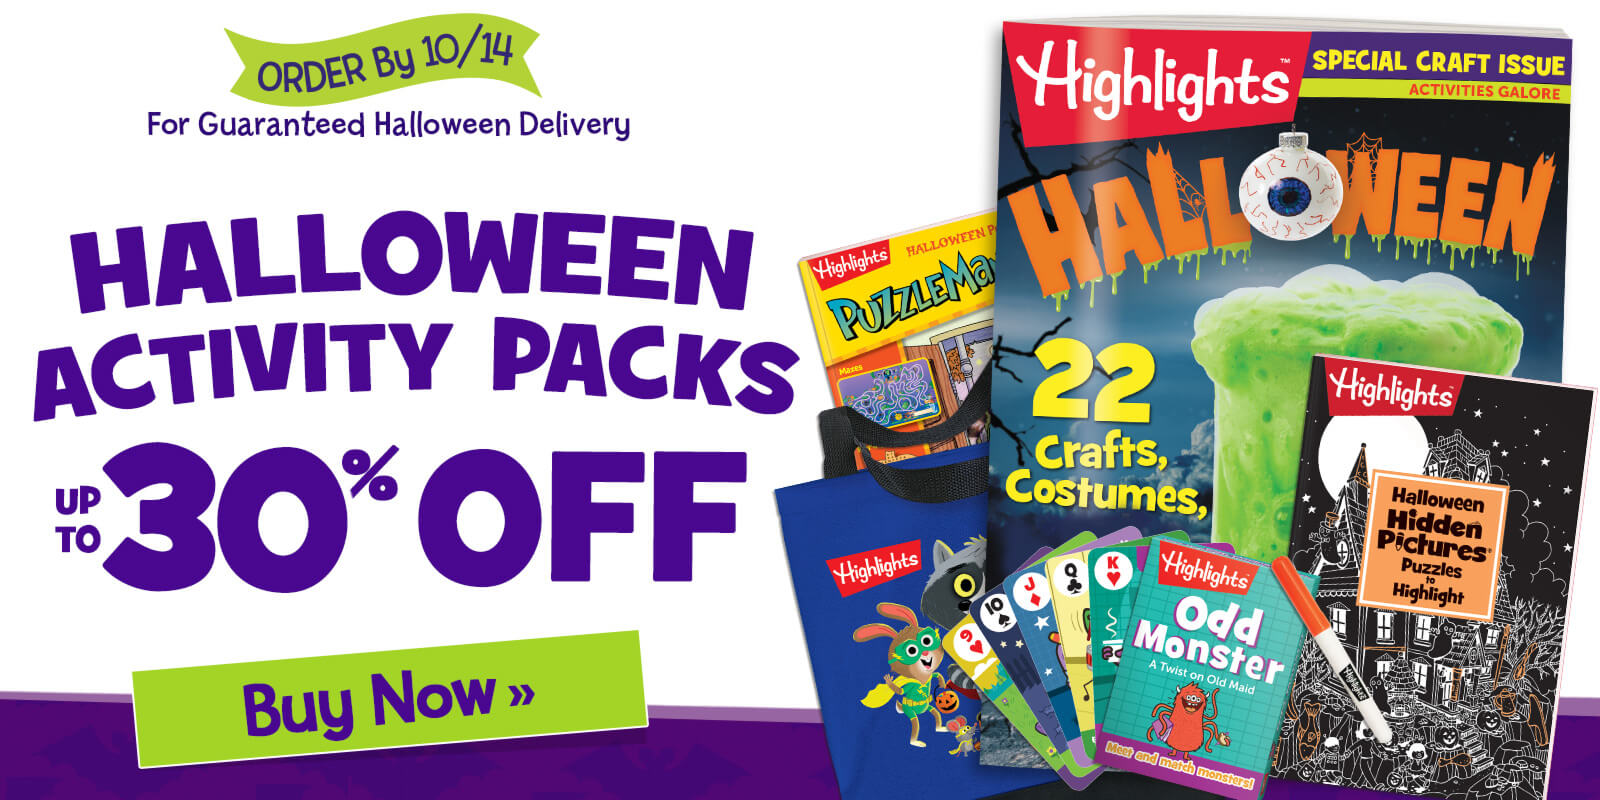 Halloween Activity Packs are up to 30% OFF – order now for Halloween delivery.